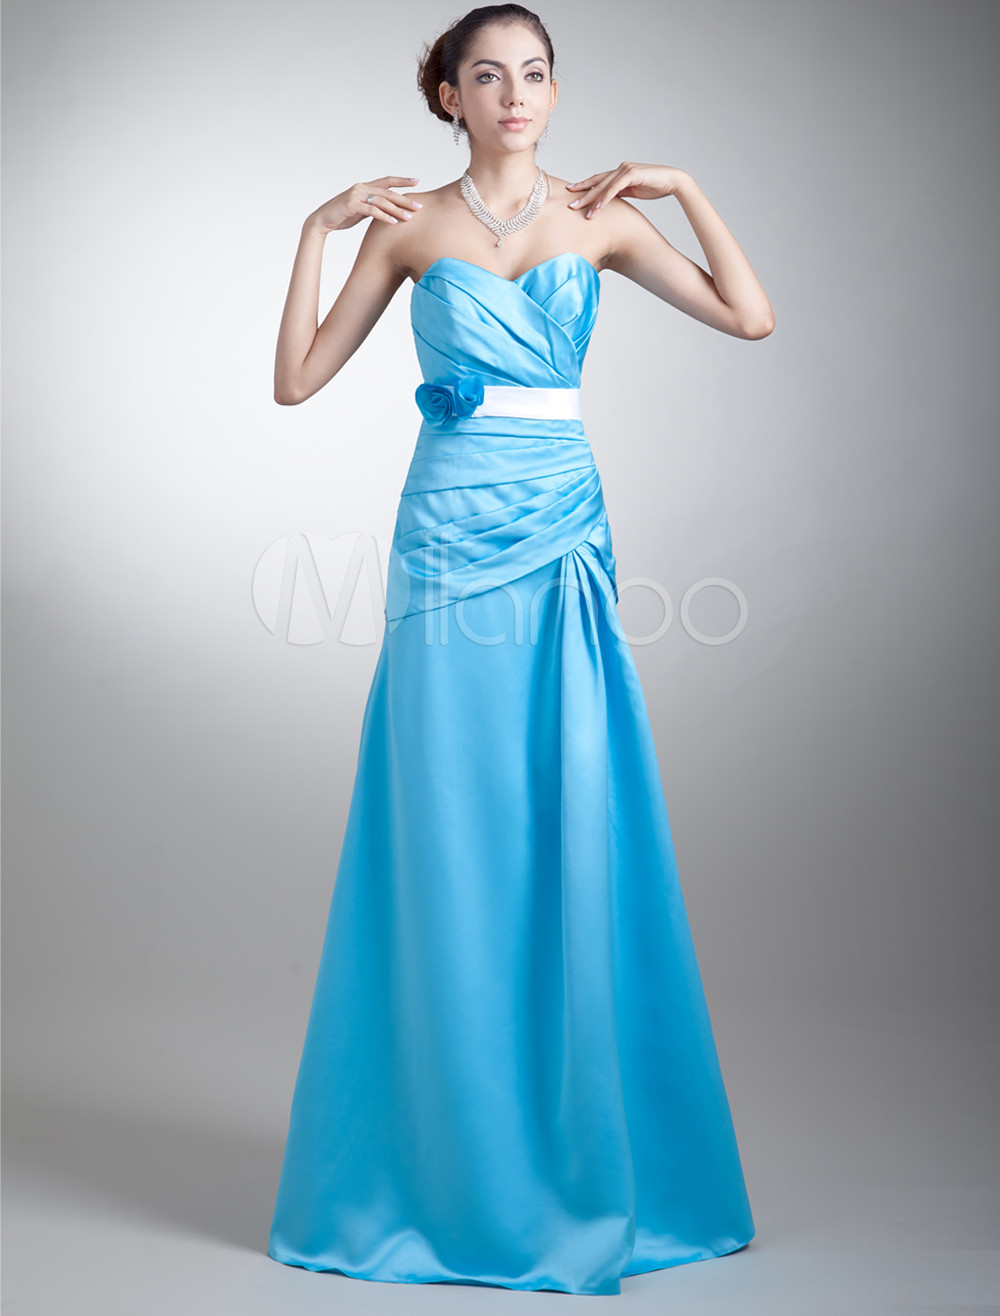 Sheath Blue Satin Floral Sweetheart Neck Fashion Bridesmaid Dress